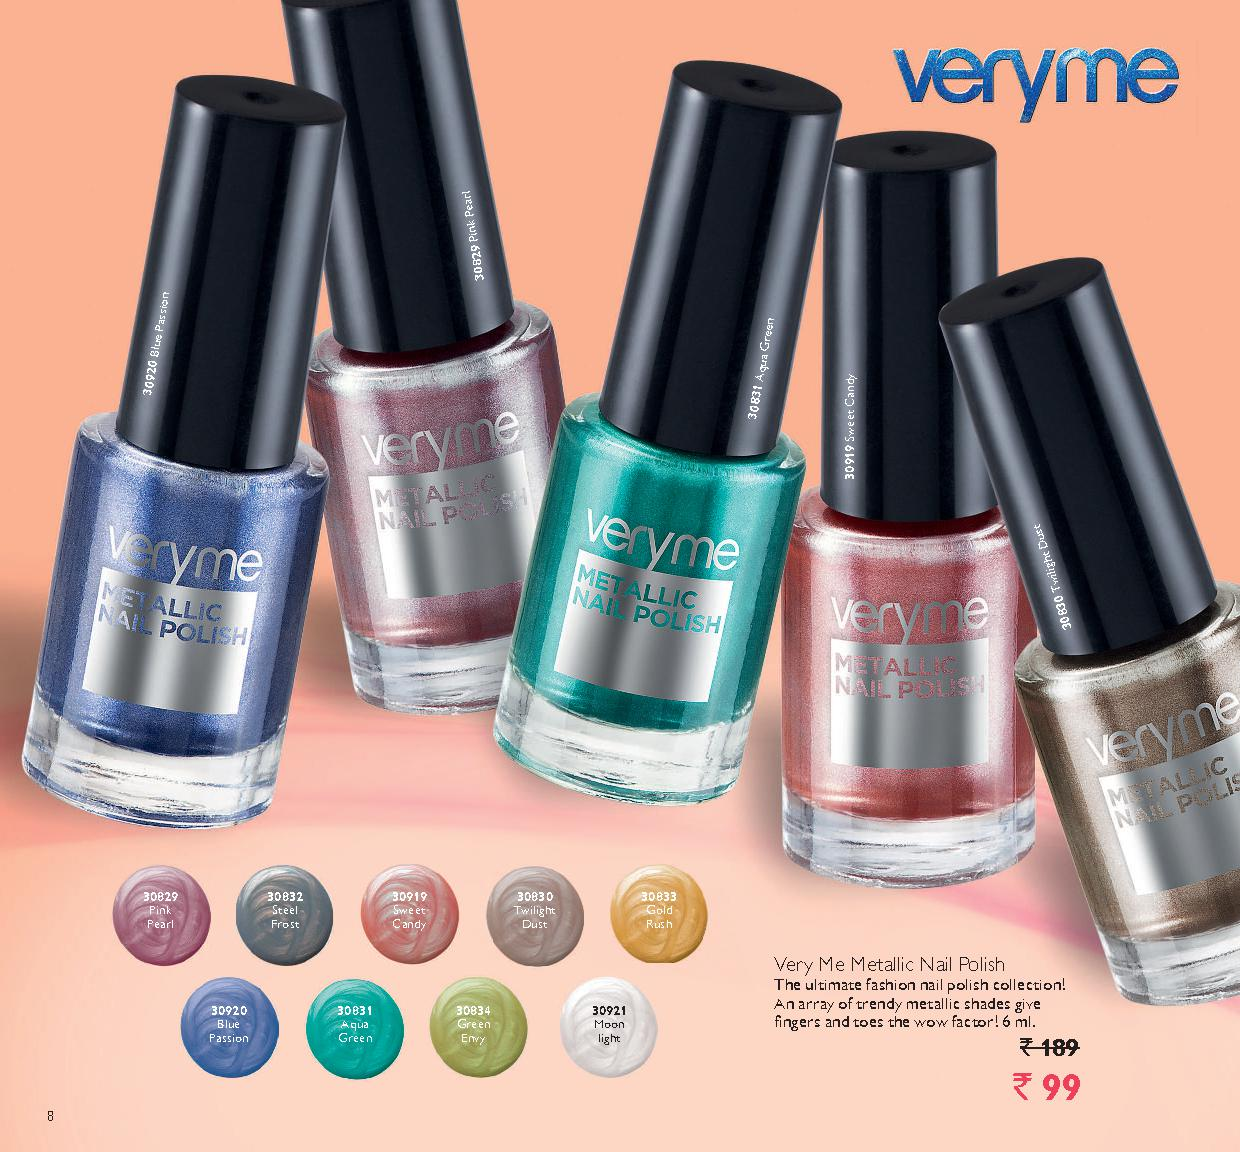 Metalic Nail Polish - Awesome Product by Very Me! | Oriflame Offers ...